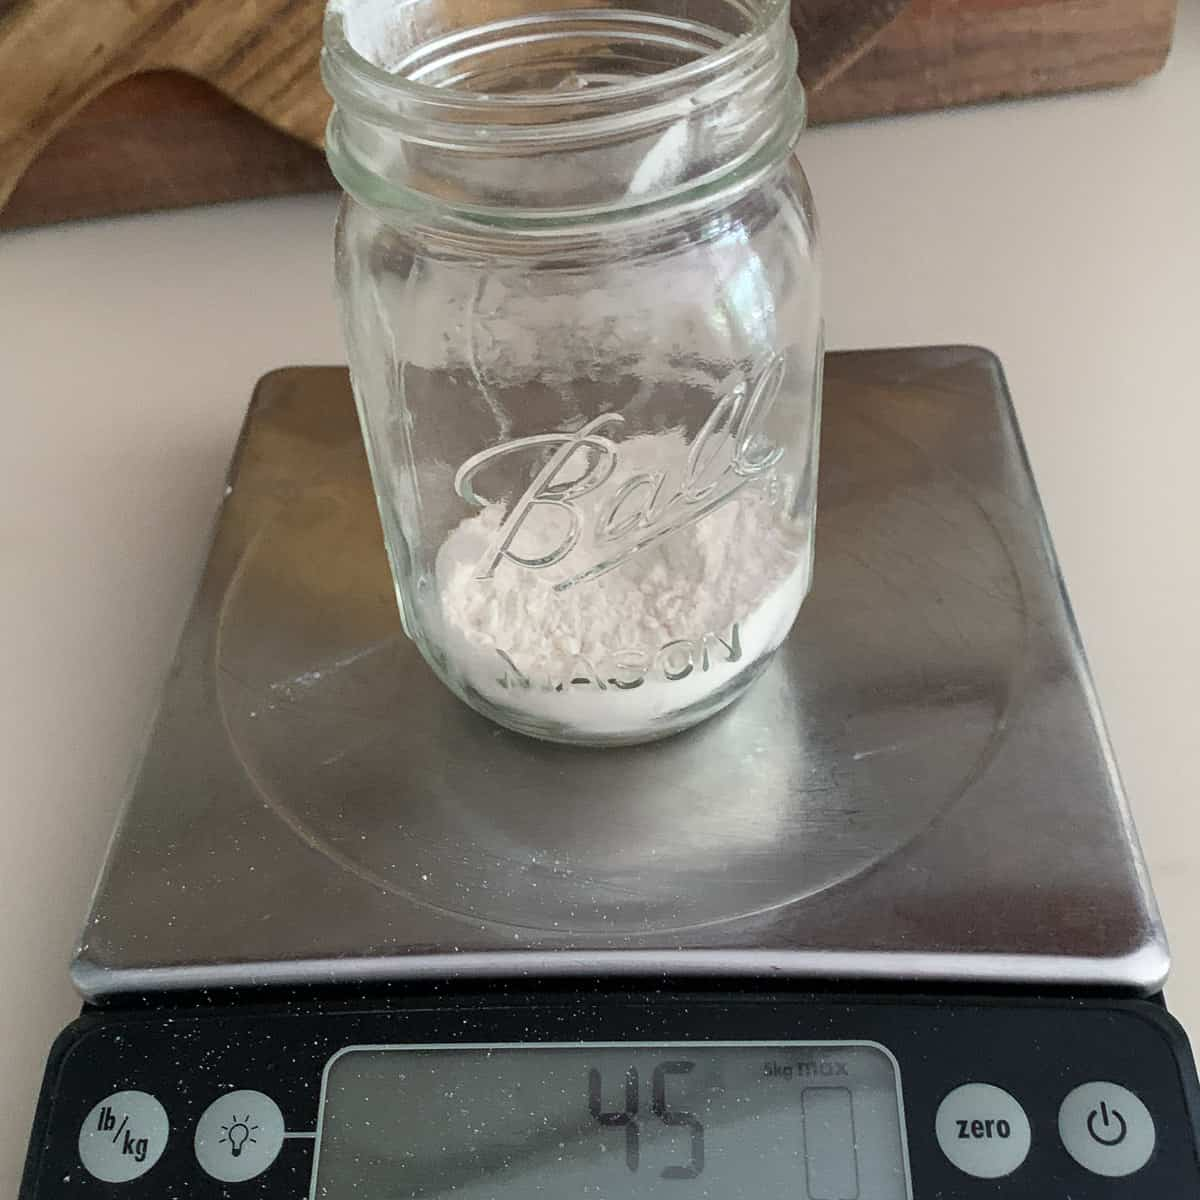 front view of ball jar on scale measuring flour ingredient at 45 grams